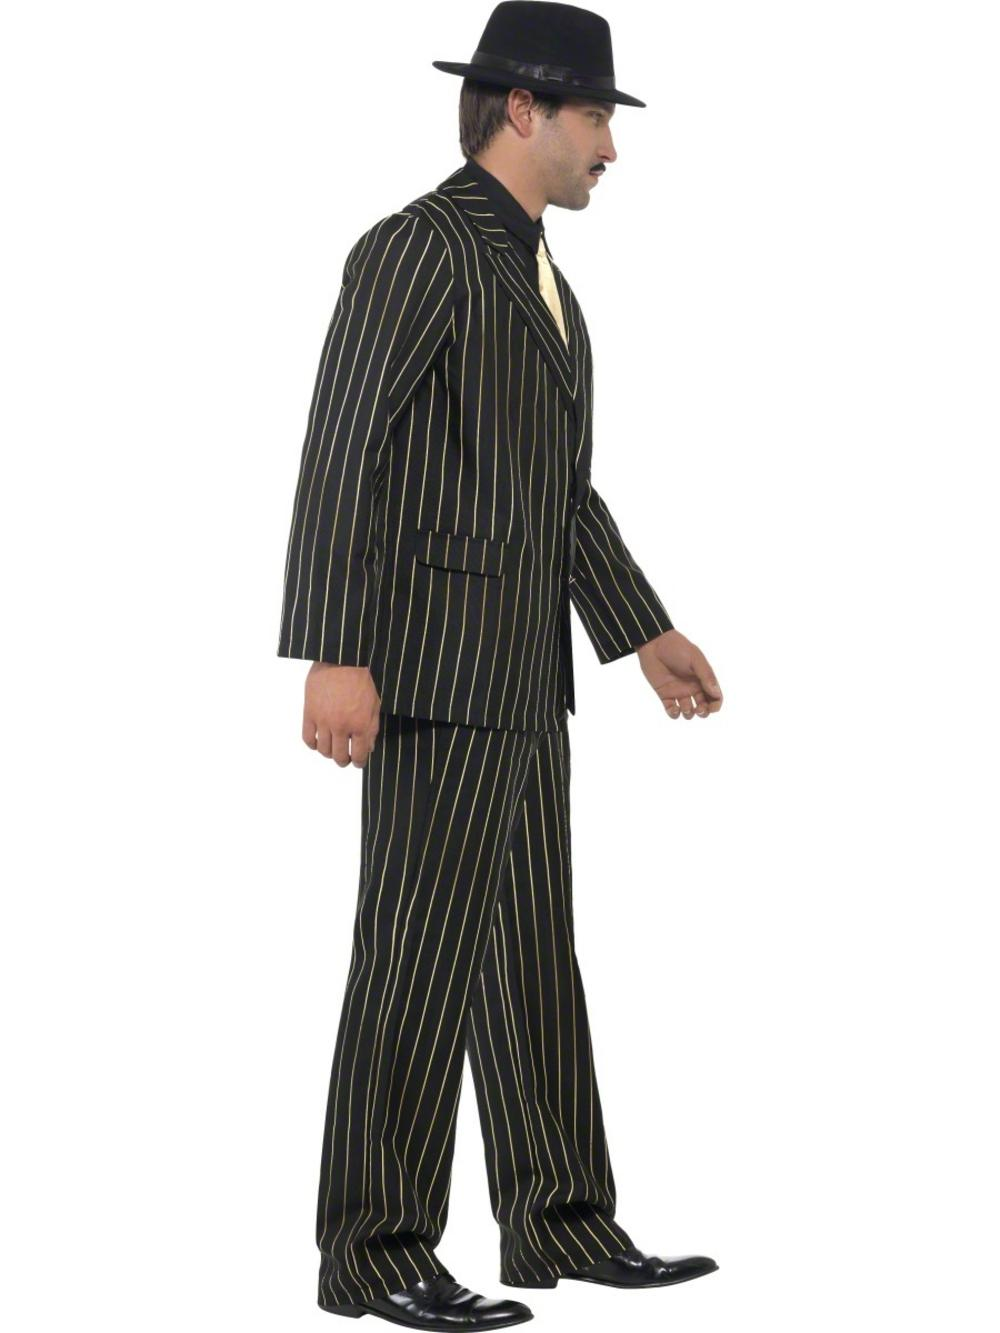 gold pinstripe gangster suit costume 20s and gangster